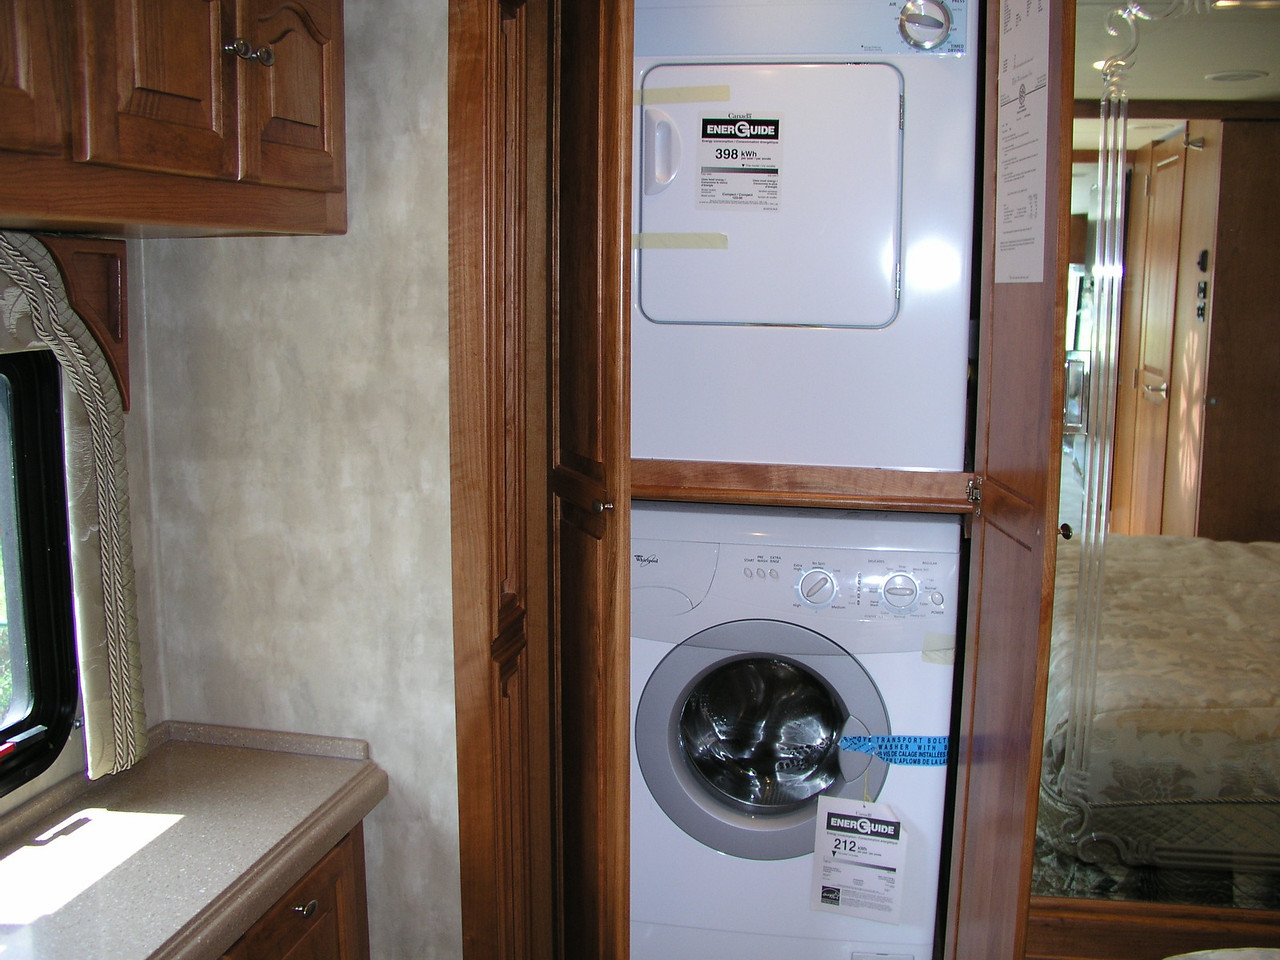 Yes a washer & dryer